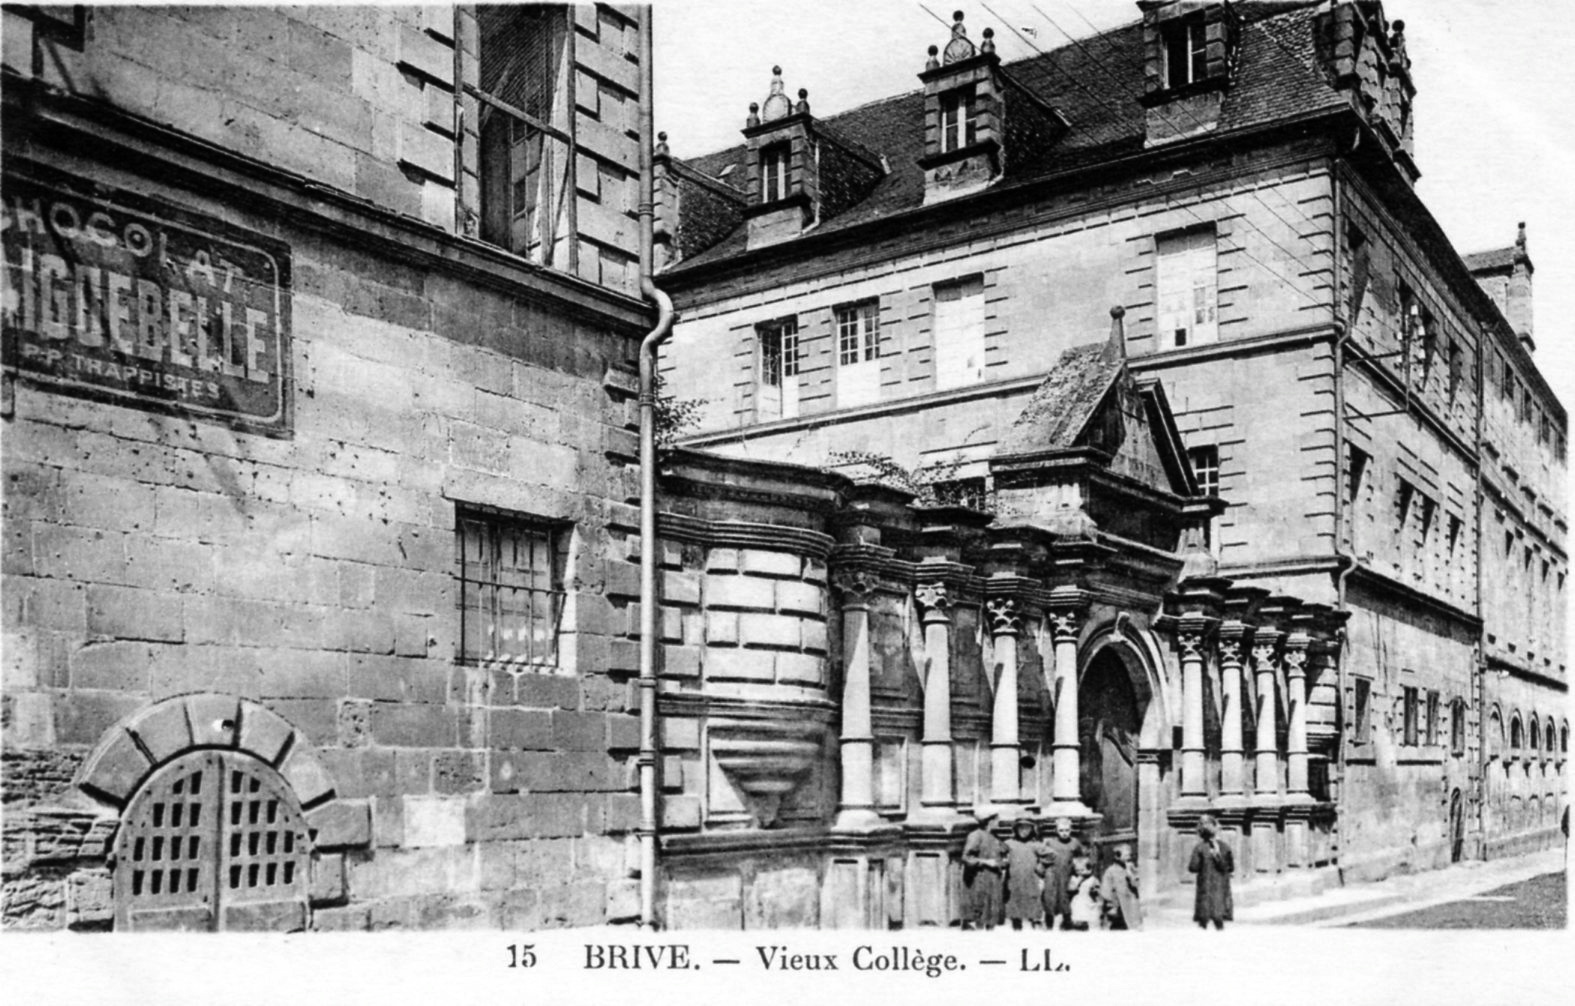 photo brive la gaillarde 19100 vieux coll ge vers 1920 carte postale ancienne brive. Black Bedroom Furniture Sets. Home Design Ideas